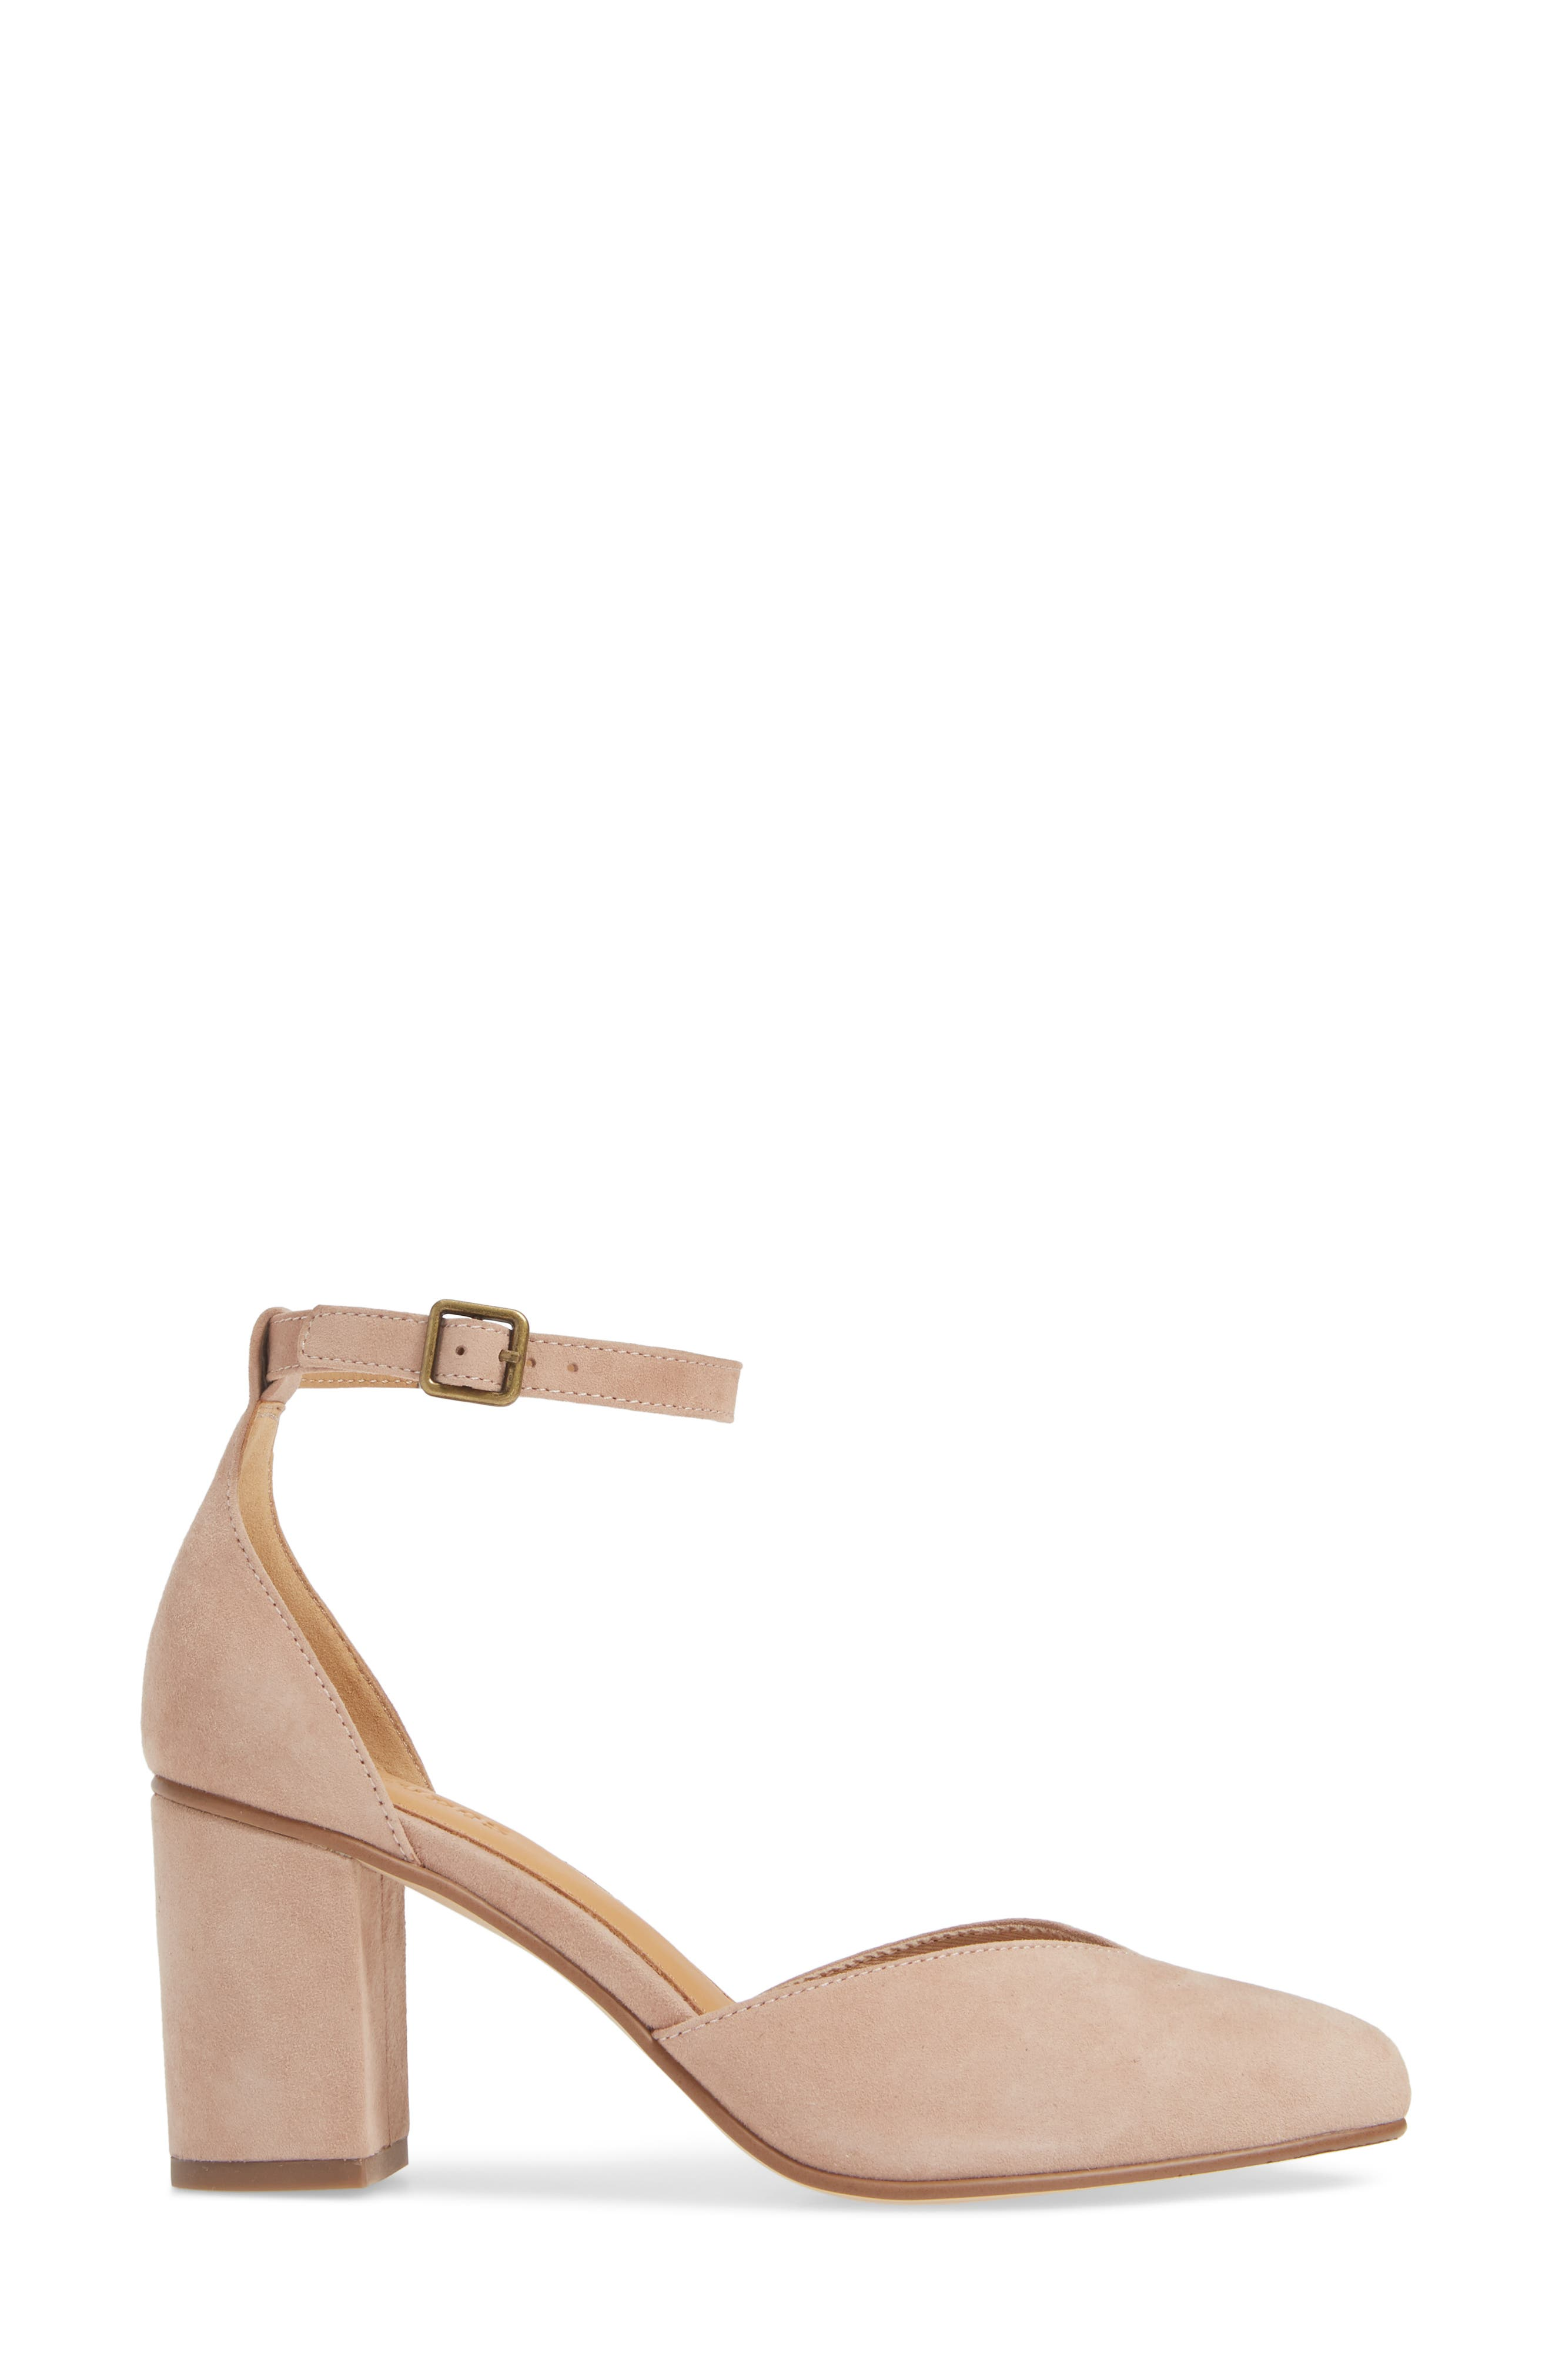 SOLUDOS,                             Adele Halo Strap Pump,                             Alternate thumbnail 3, color,                             689